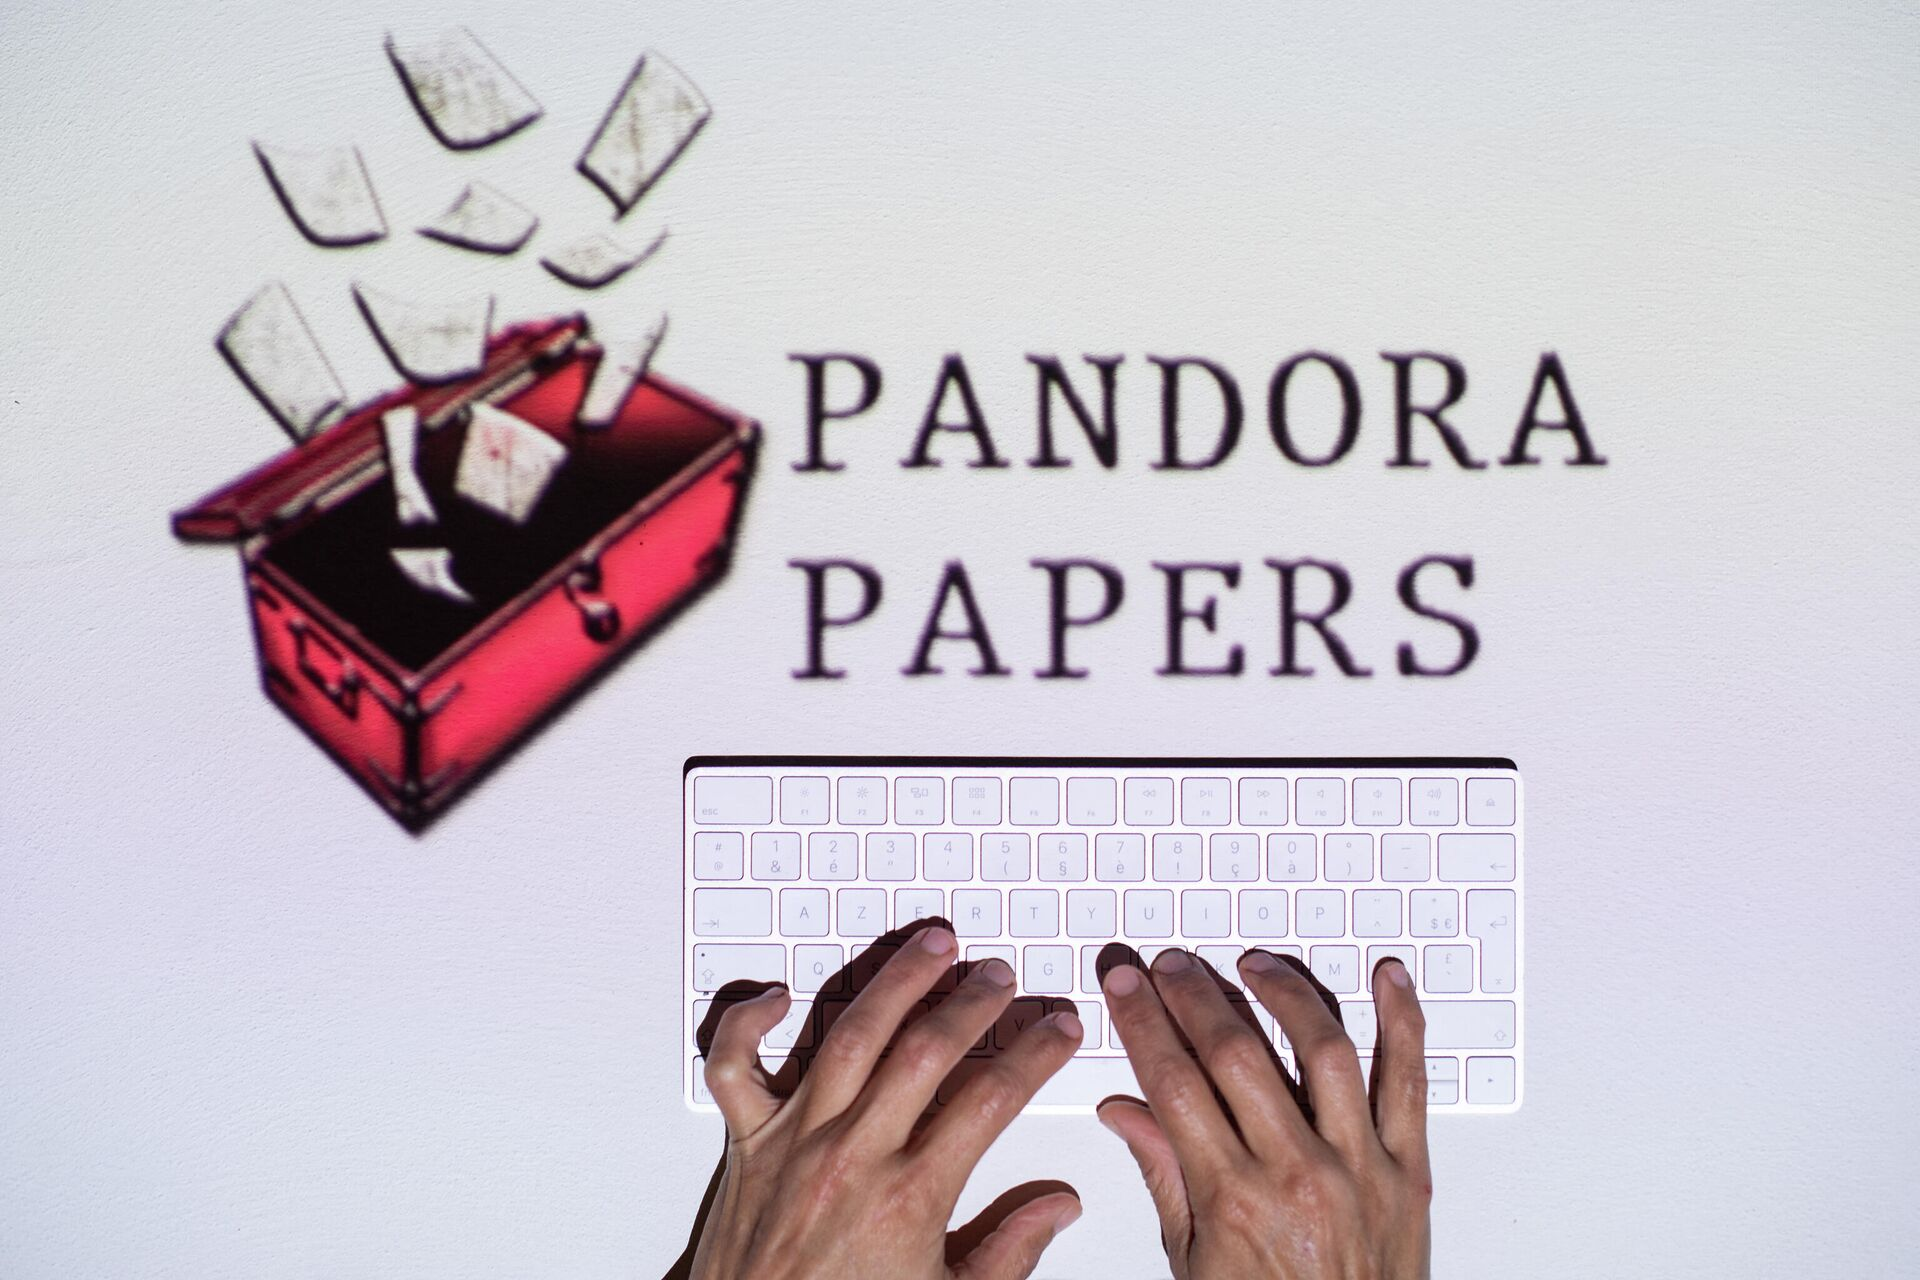 This photograph illustration shows hands typing on a keyboard in front of the logo of Pandora Papers, in Lavau-sur-Loire, western France, on October 4, 2021 - Sputnik International, 1920, 11.10.2021